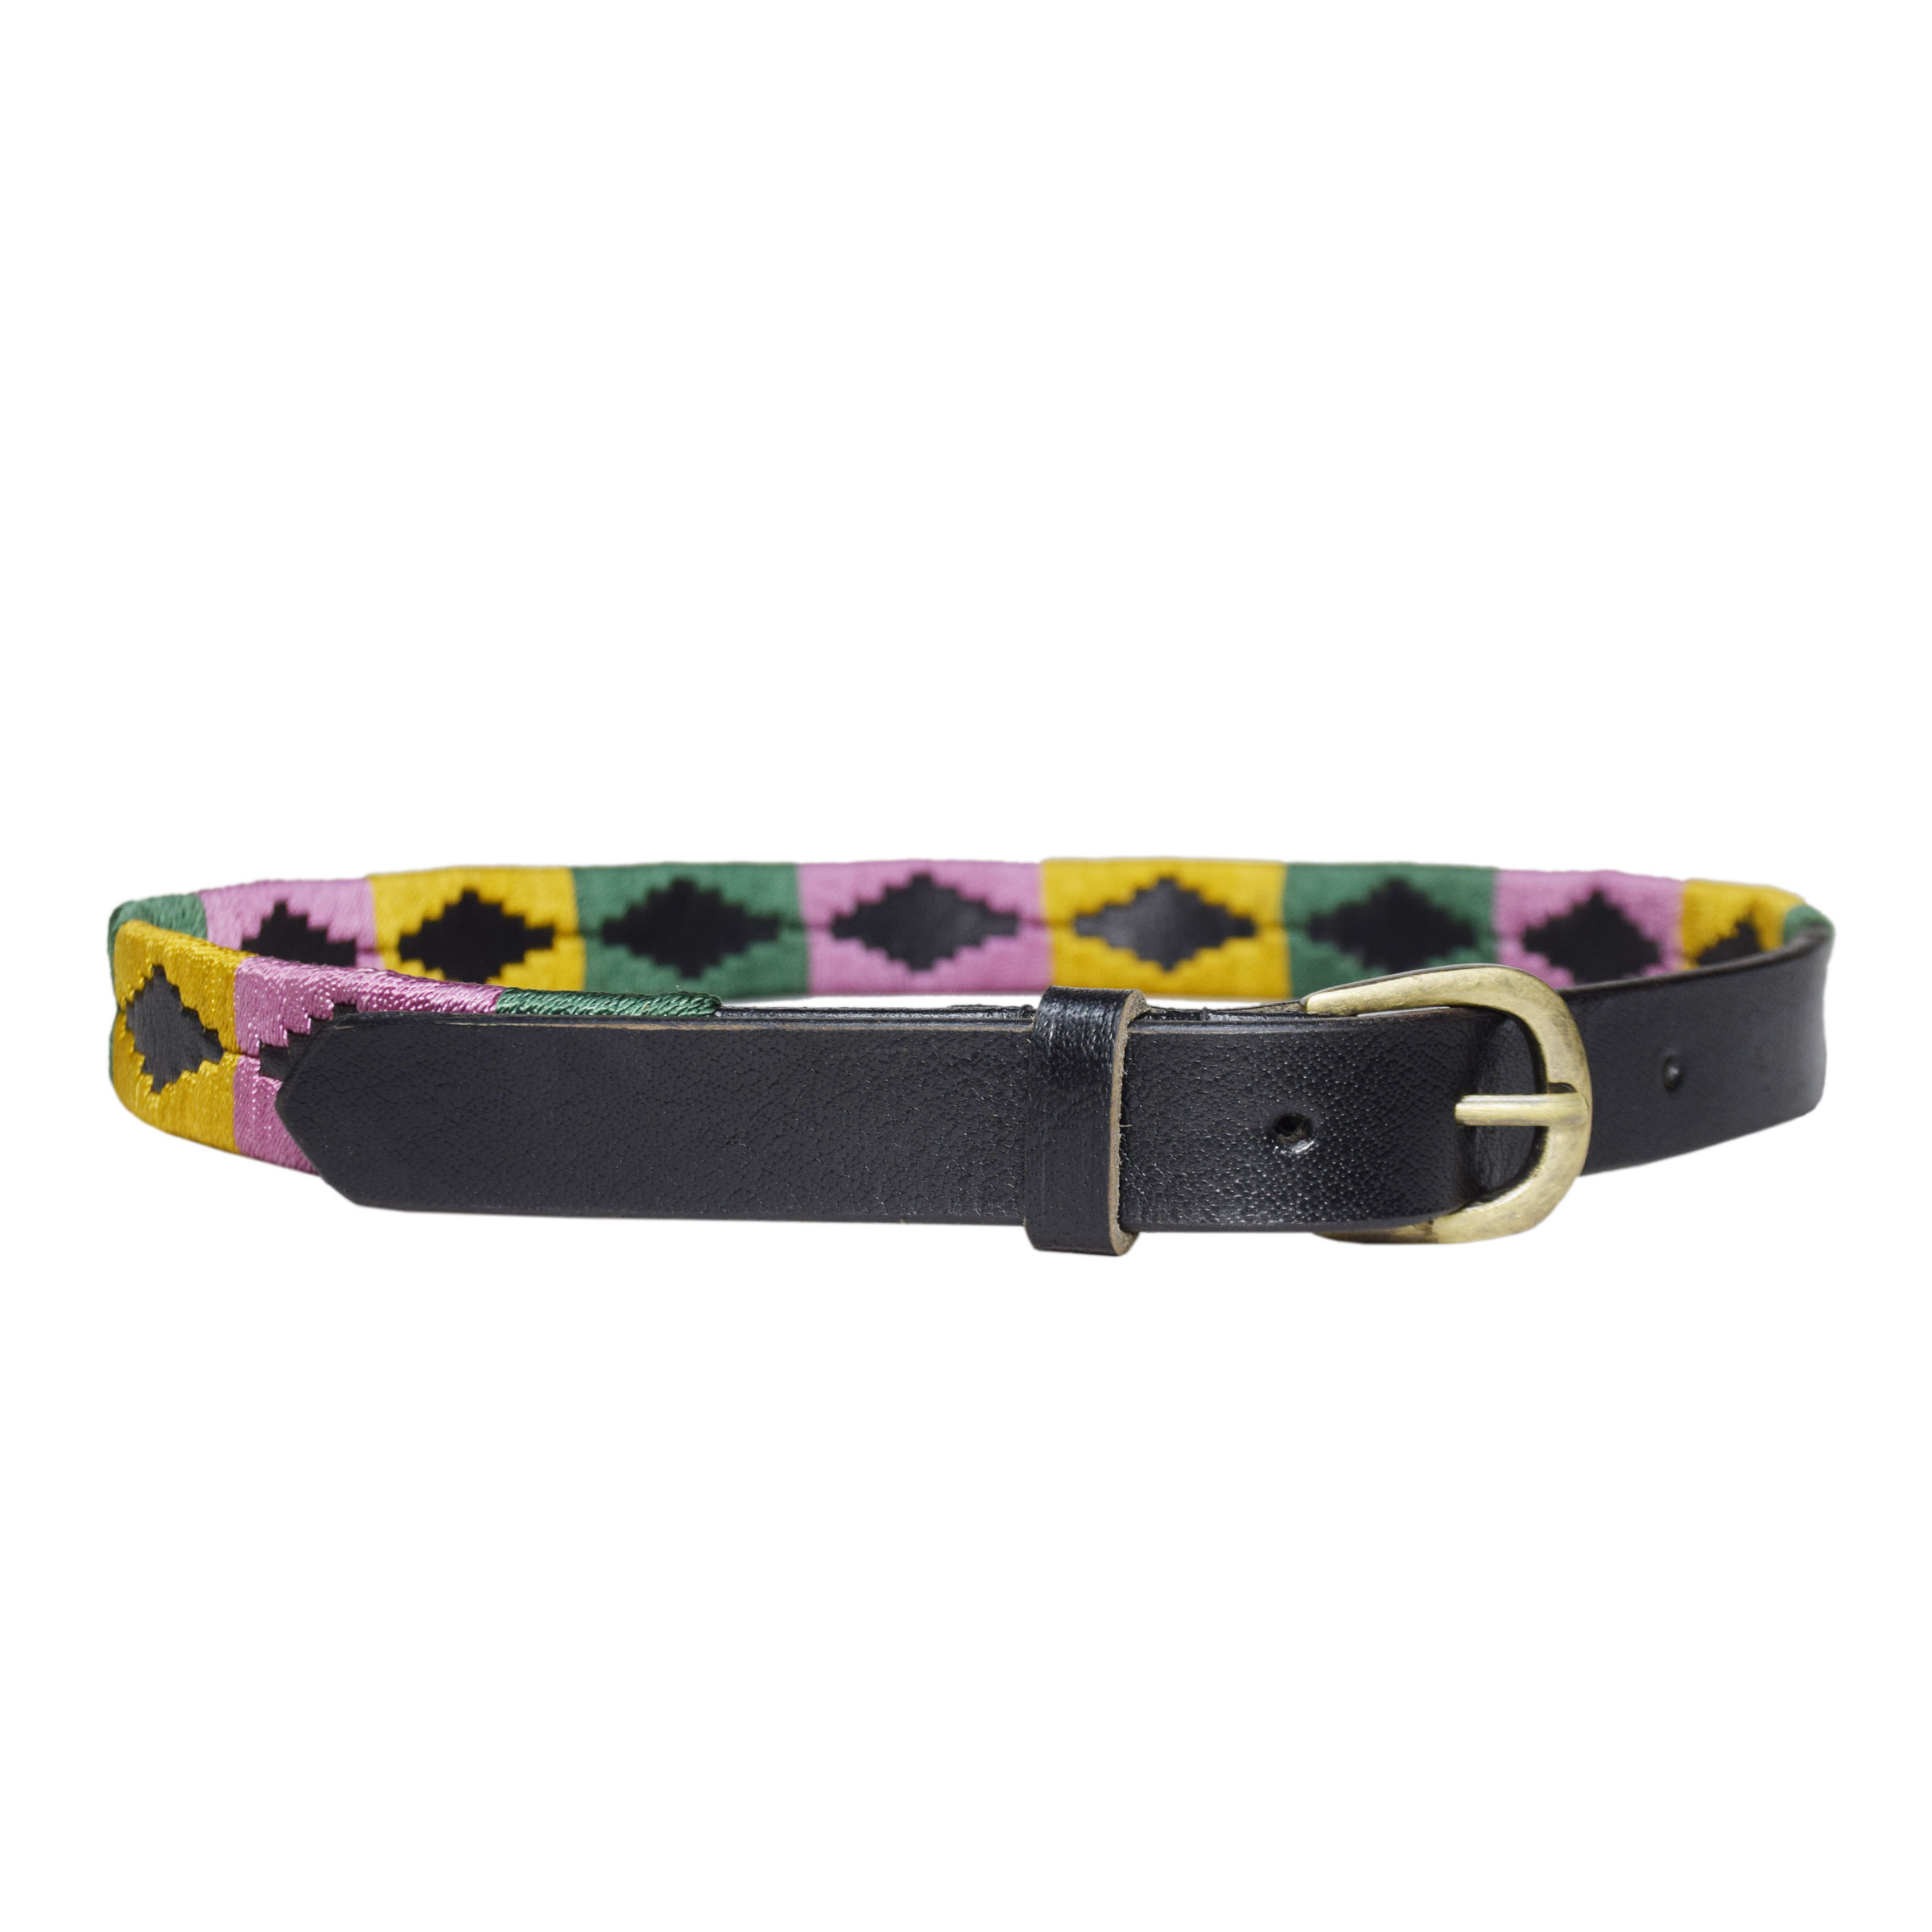 BLACK POLO BELT WITH MULTICOLOR DESIGN 1 INCH